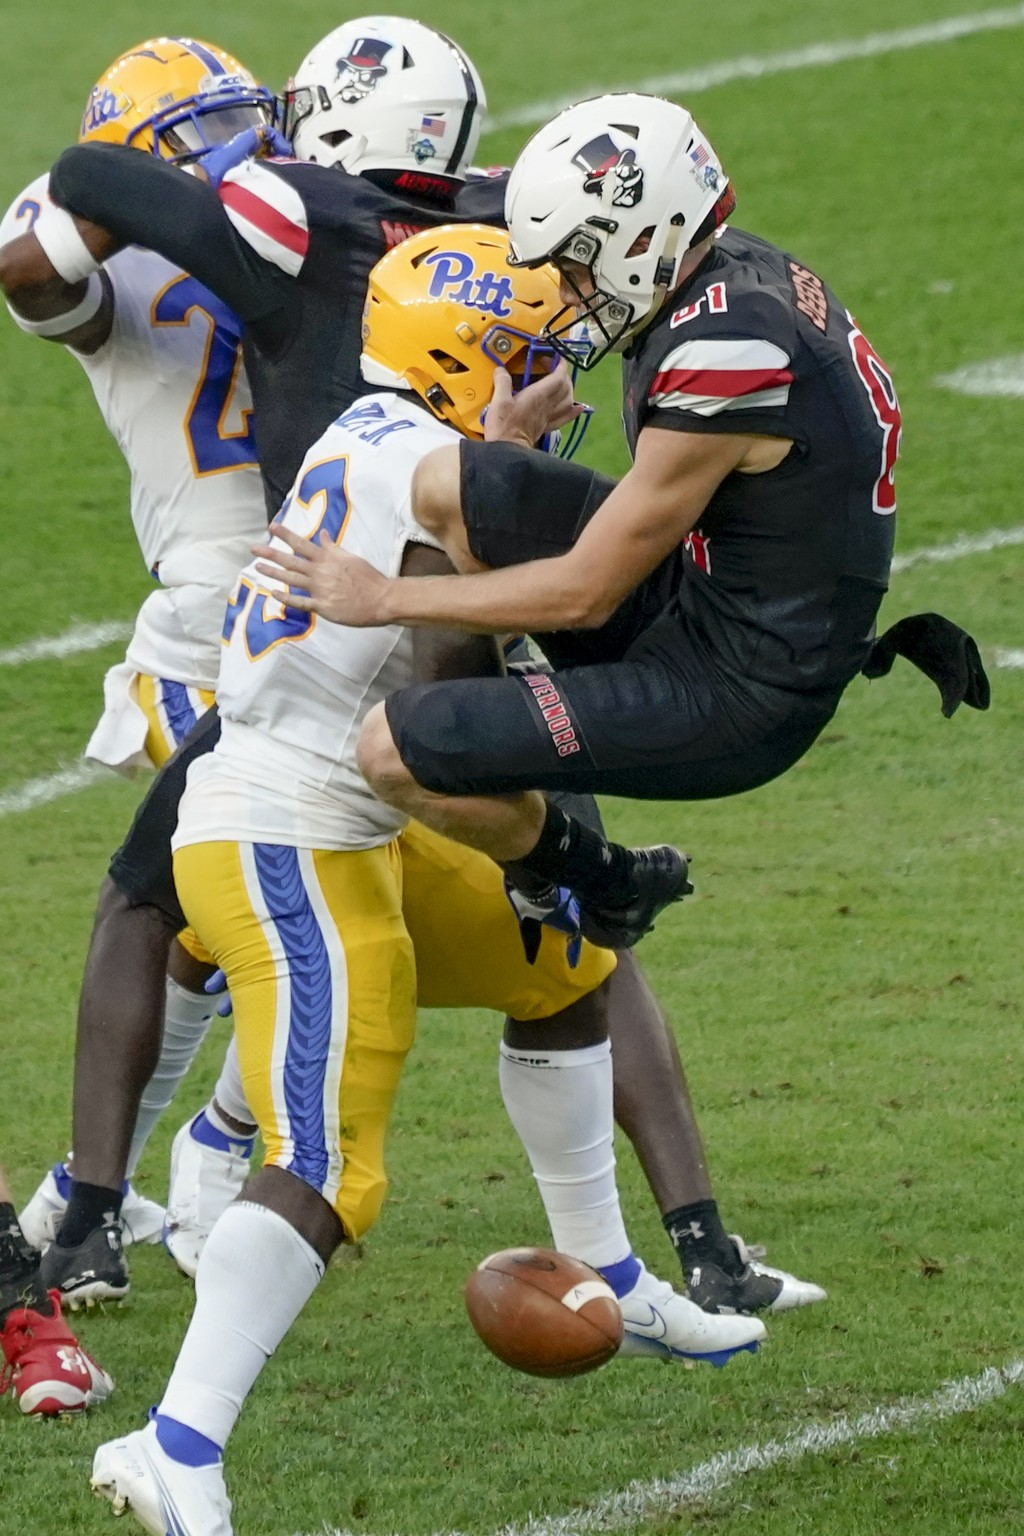 FILE - In this Saturday, Sept. 12, 2020, file photo, Pittsburgh's Todd Sibley Jr. (23) blocks a punt by Austin Peay punter Cole Deeds before returning...